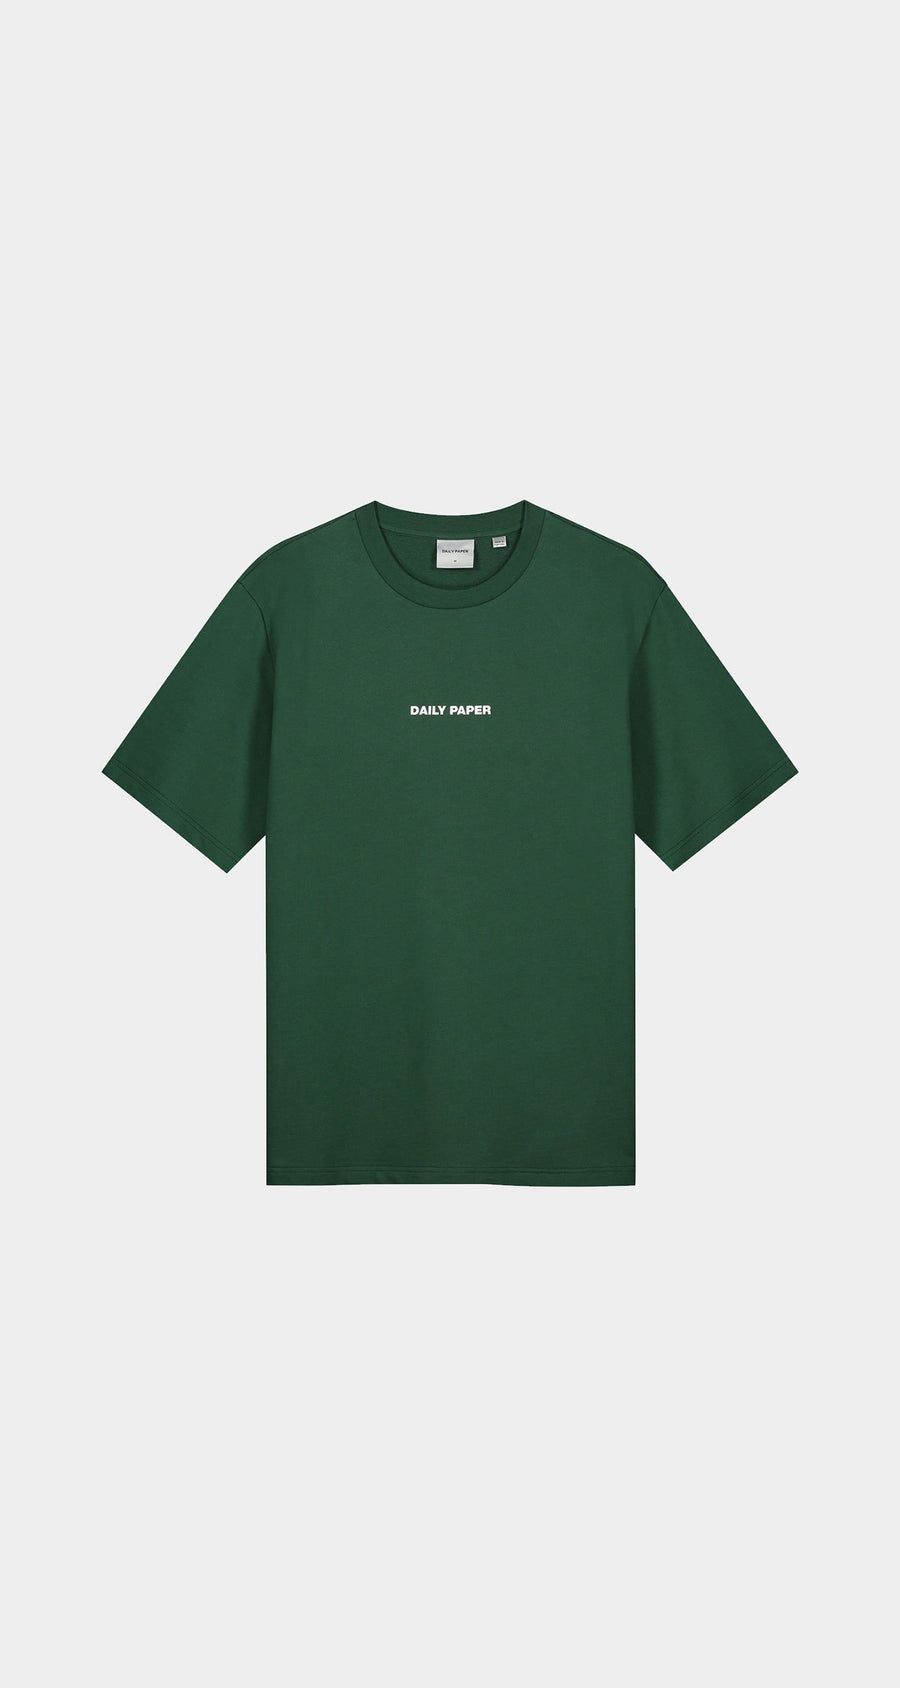 Daily Paper - Pineneedle Green Refarid T-Shirt - Women Front